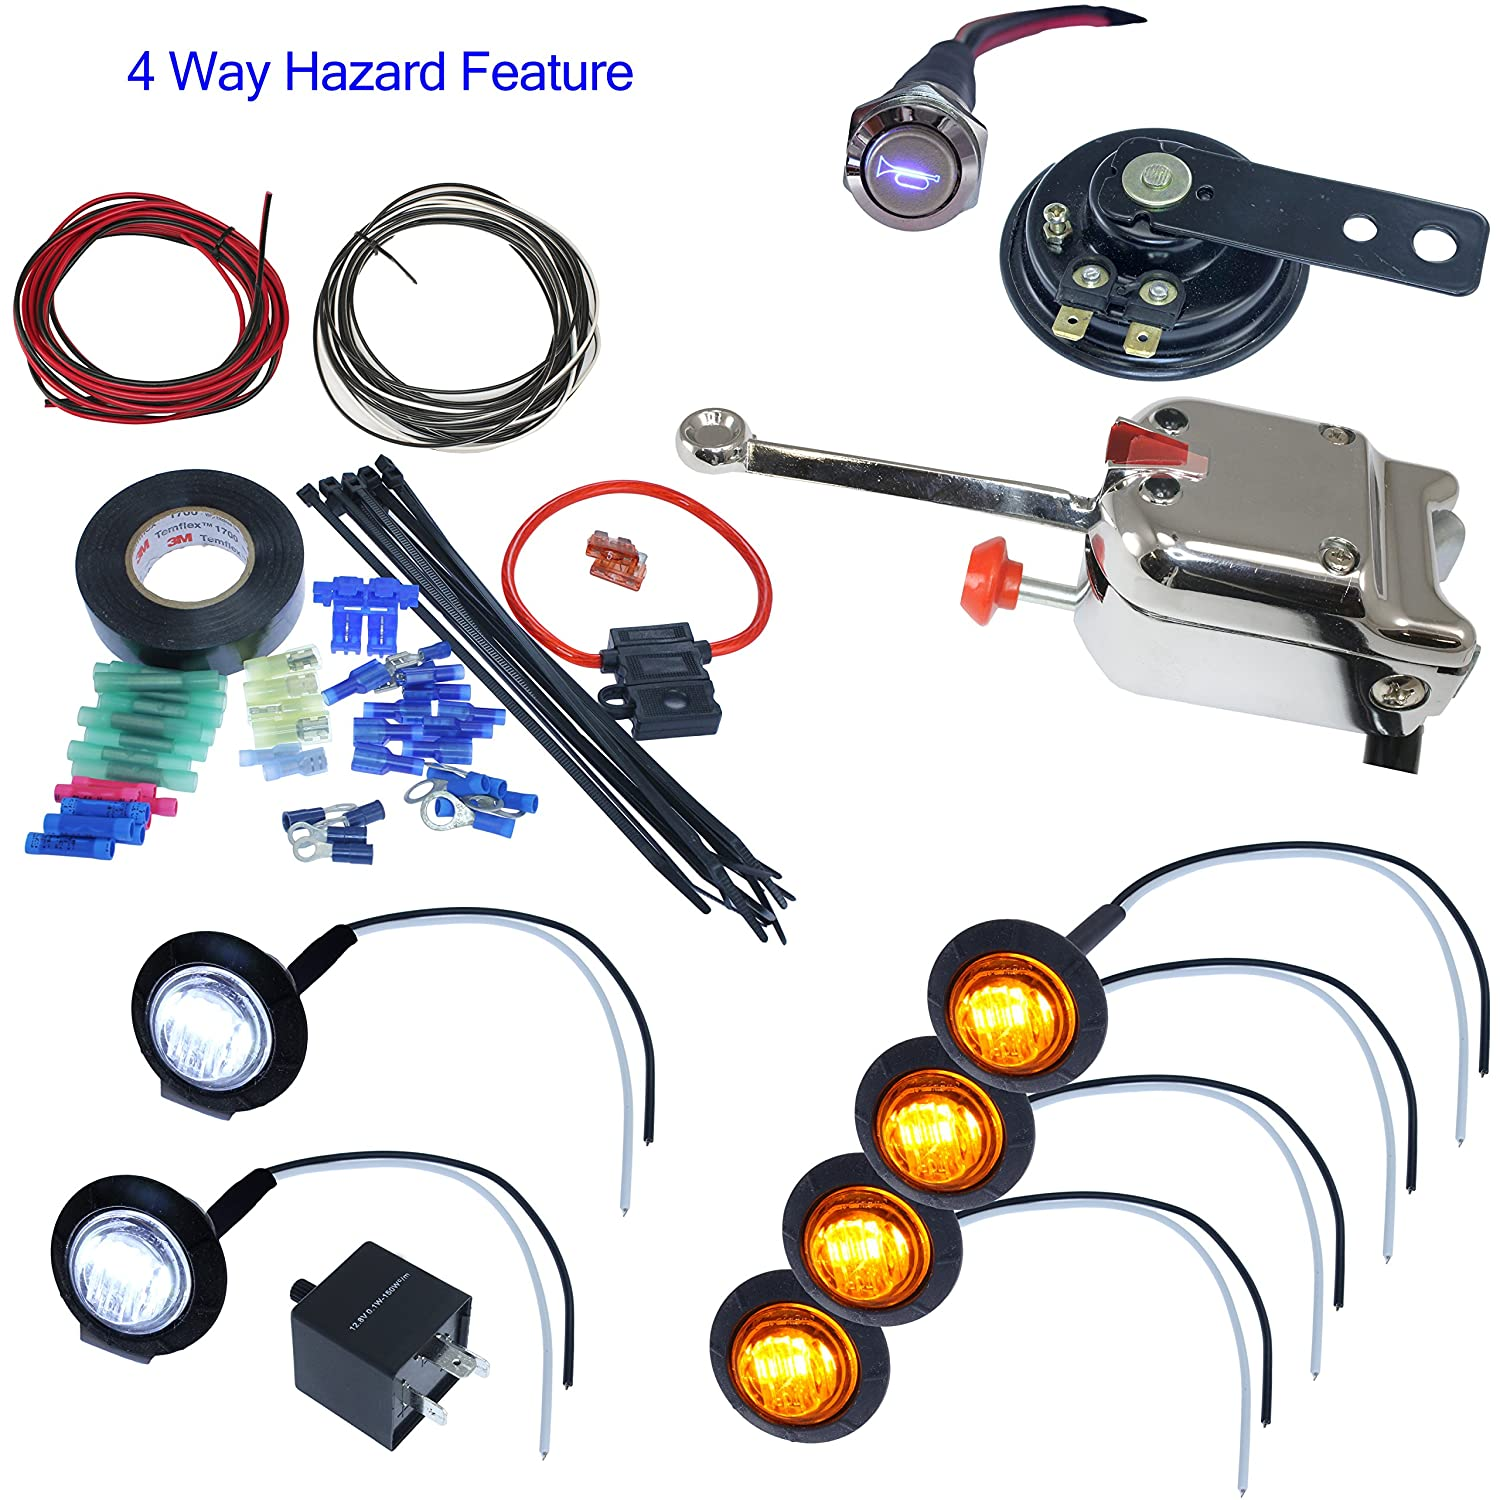 Amazon.com: Advance MCS Electronics UTV Heavy Duty Lever Switch Turn on horn relay, gm horn diagram, car horn diagram, horn installation diagram, horn circuit, horn assembly diagram, horn cover, horn schematic, horn steering diagram, horn safety, air horn diagram, horn parts,